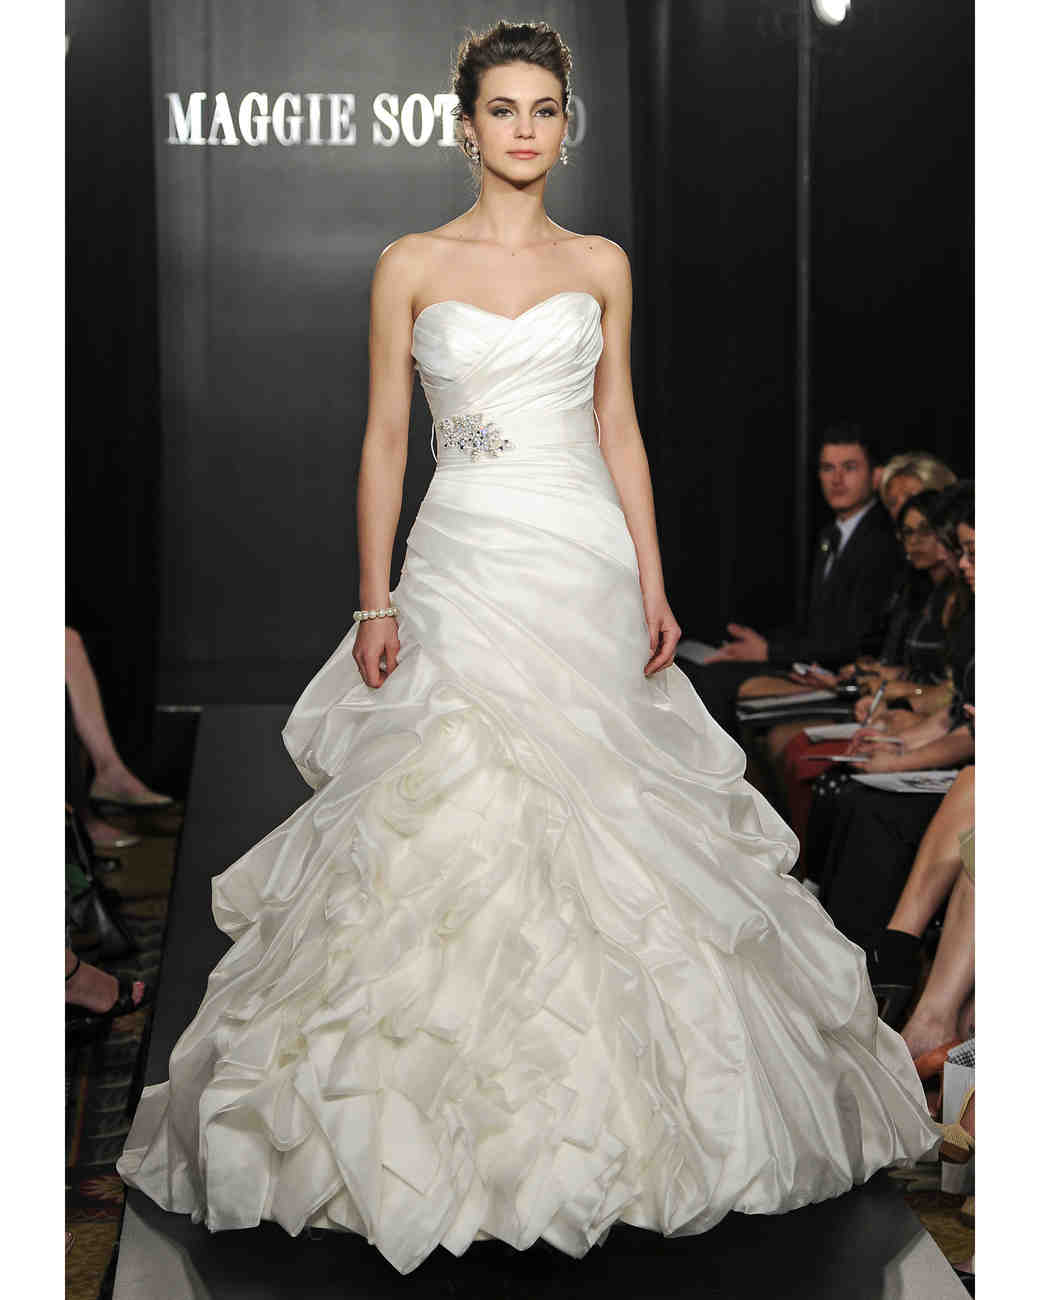 maggie-sottero-spring2013-wd108745-012.jpg